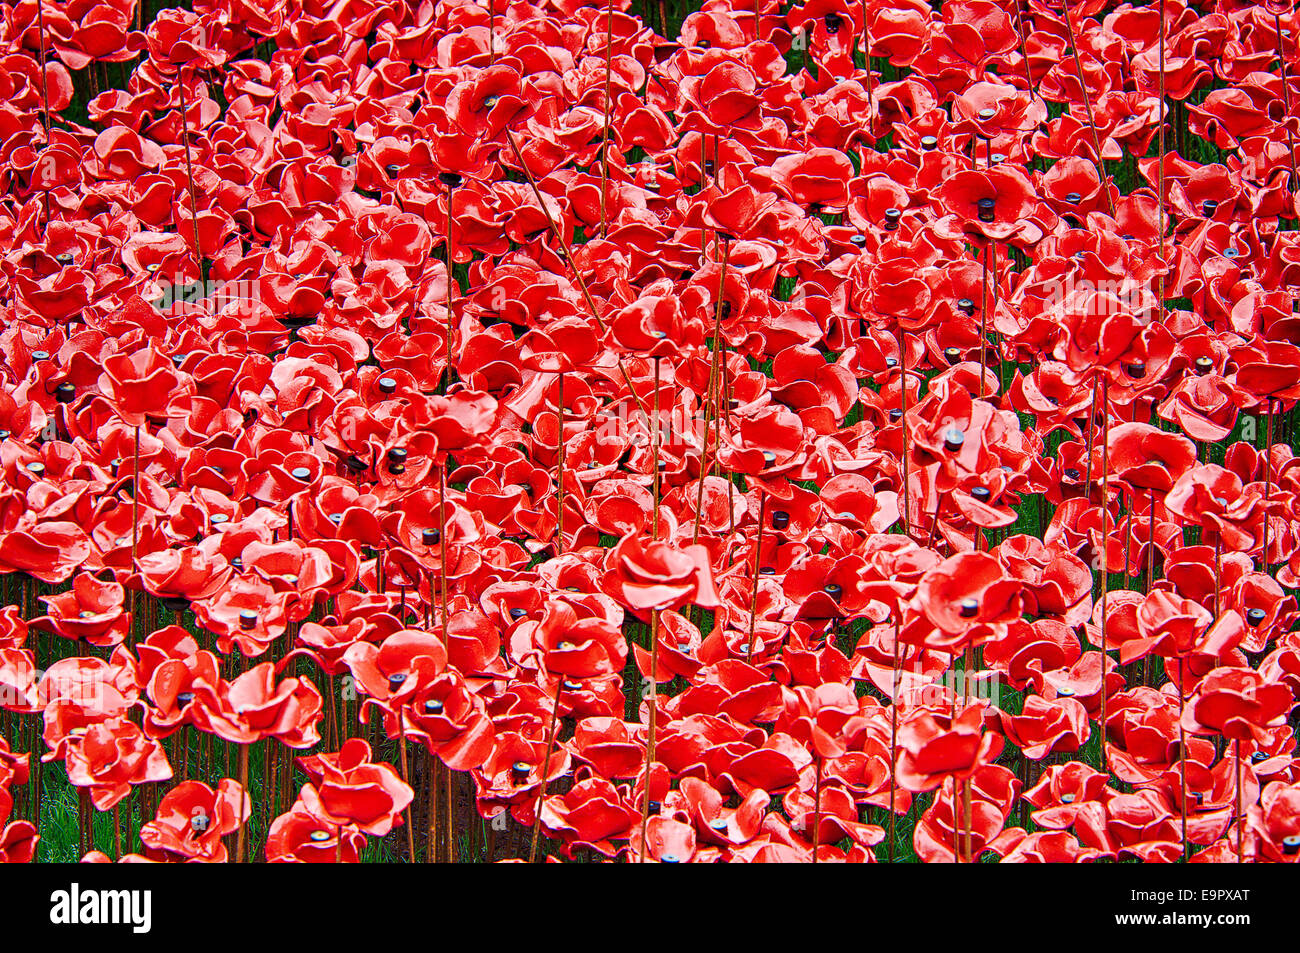 Close up of the poppies at the Blood Swept Lands and Seas of Red installation at the Tower of London - Stock Image